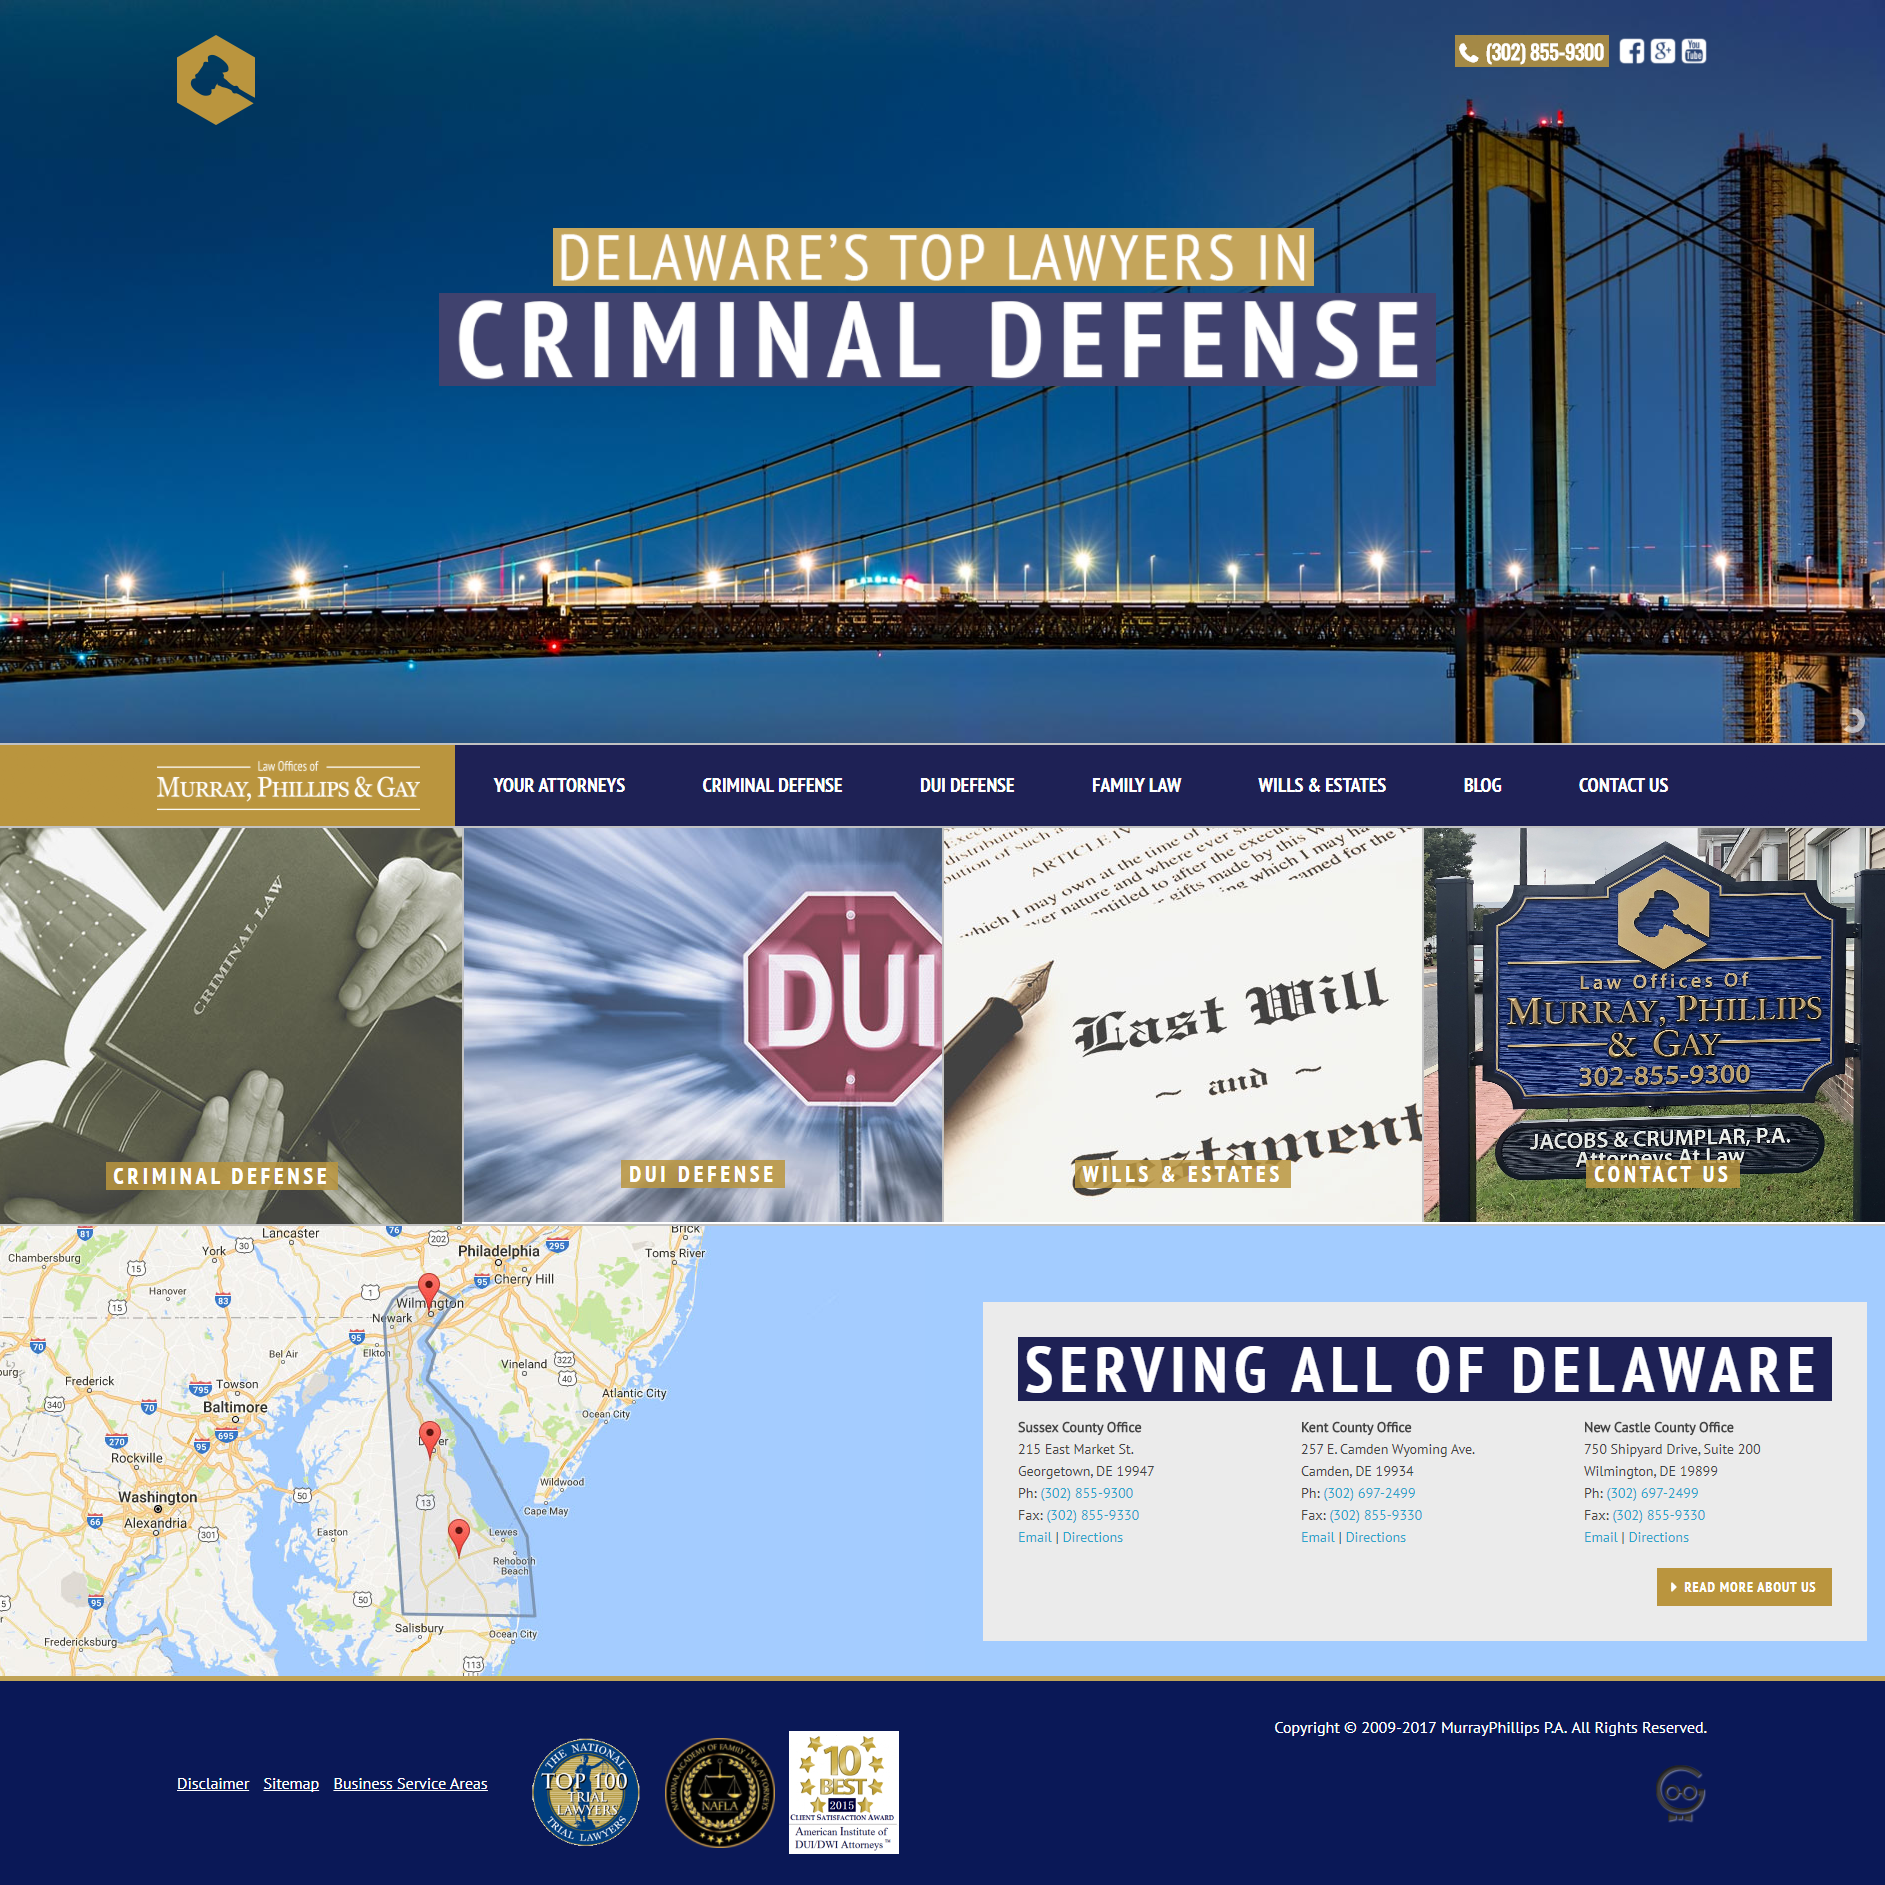 Law Offices of Murray, Phillips & Gay website